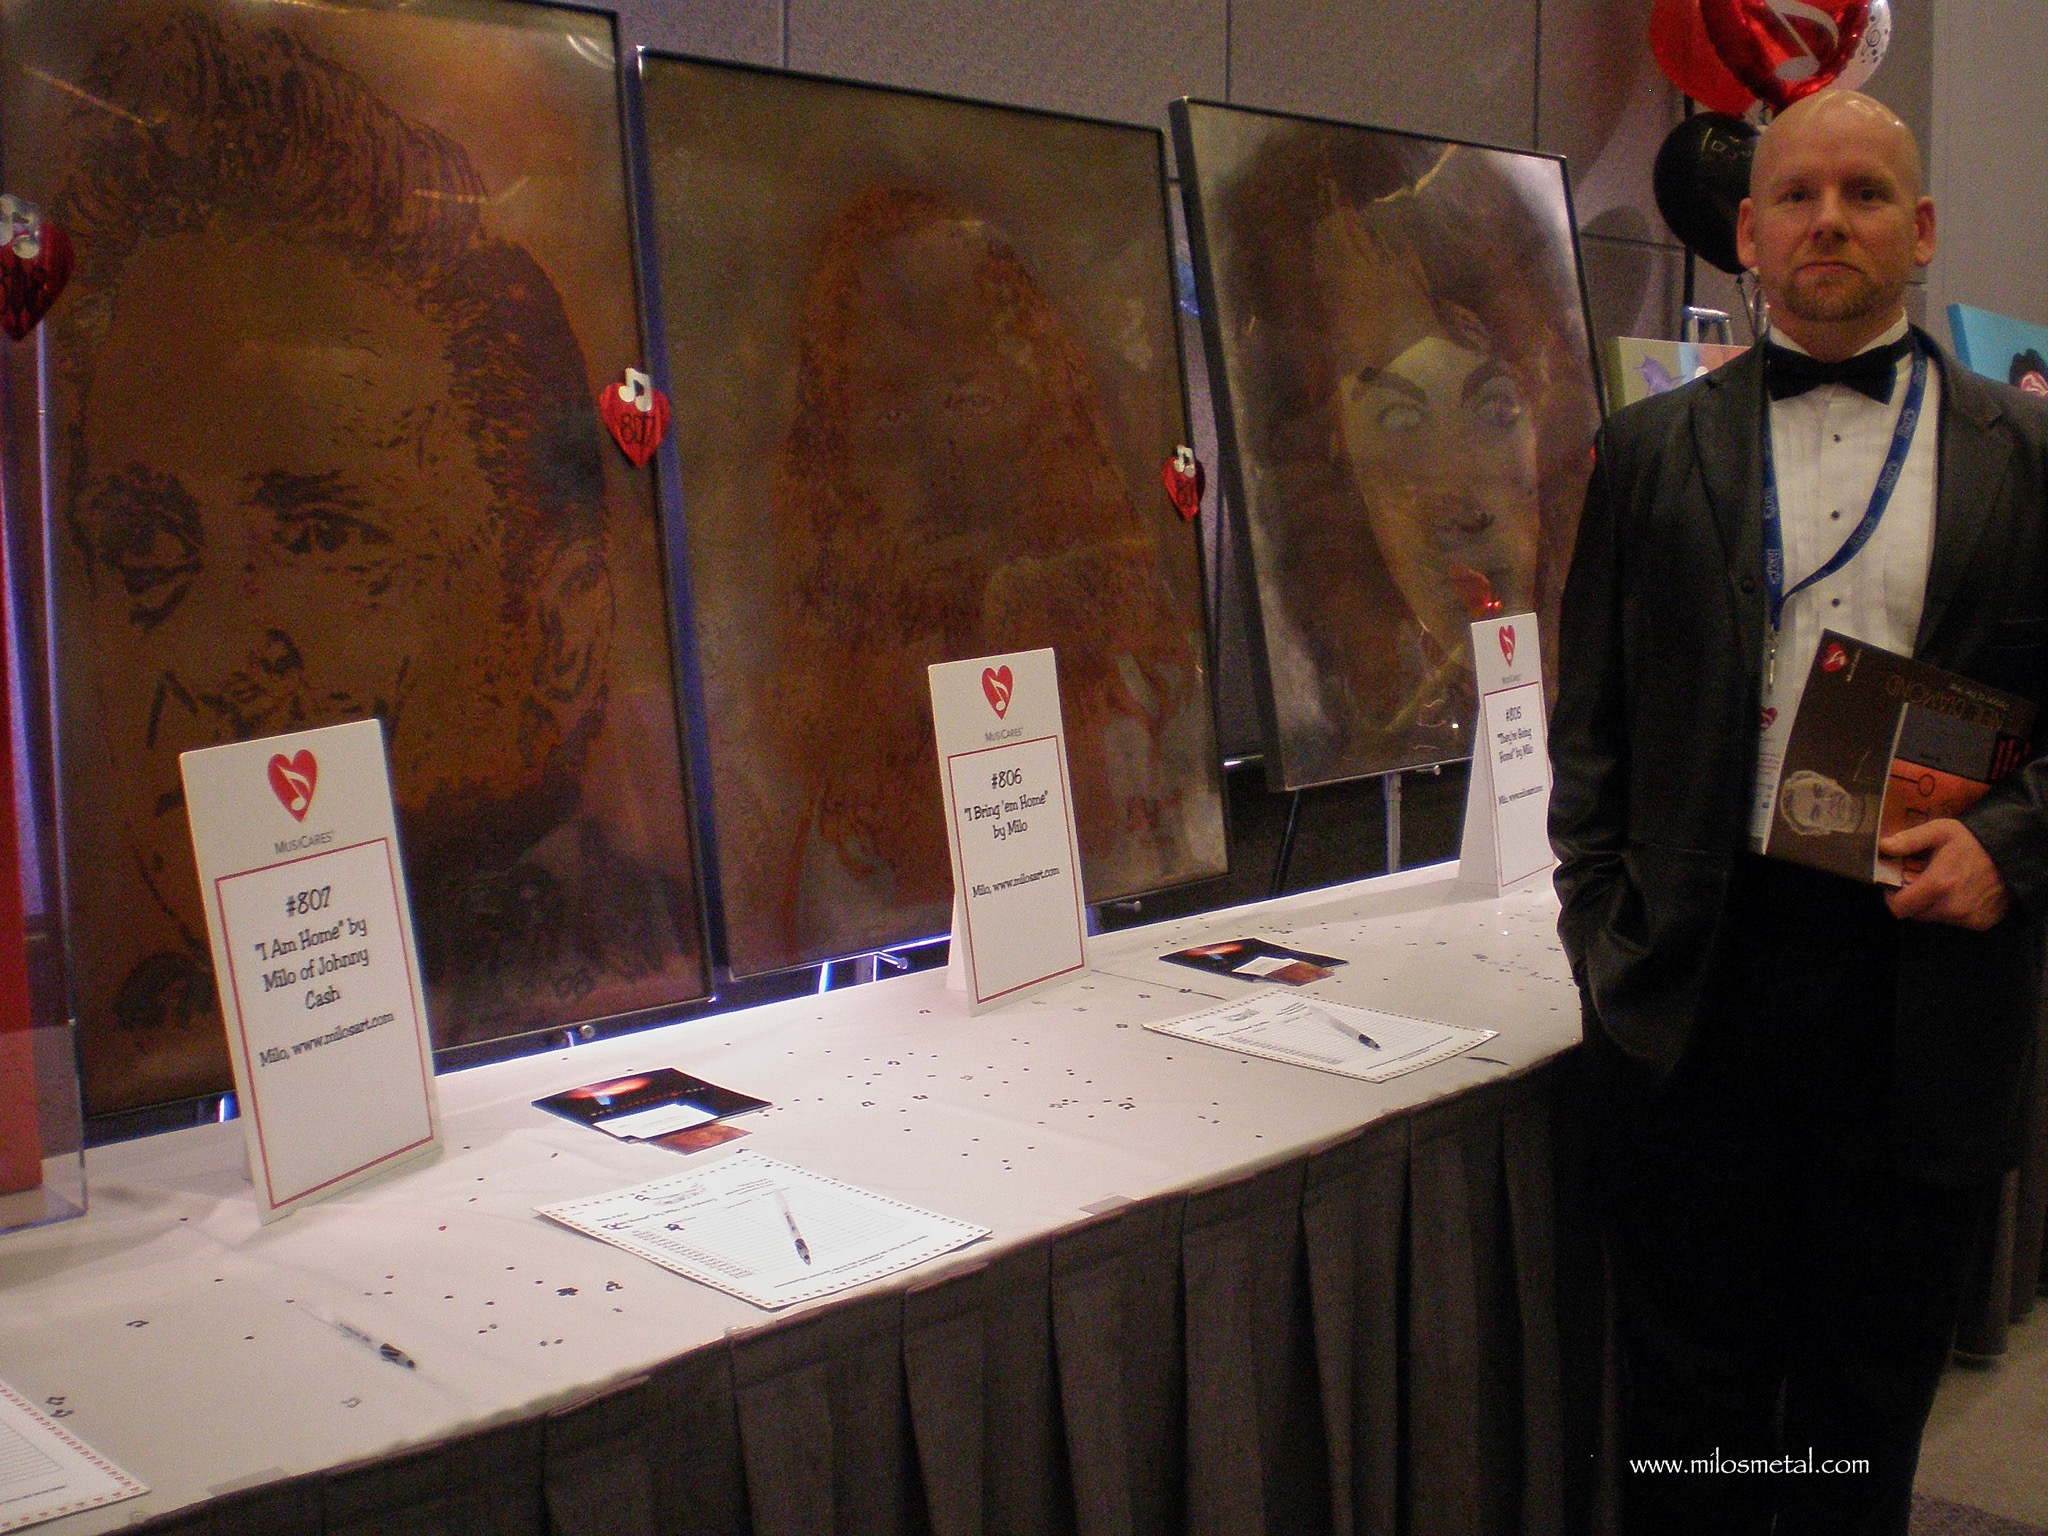 Milo at the 2009 Grammy Awards - Volcanic Stainless Steel Painting